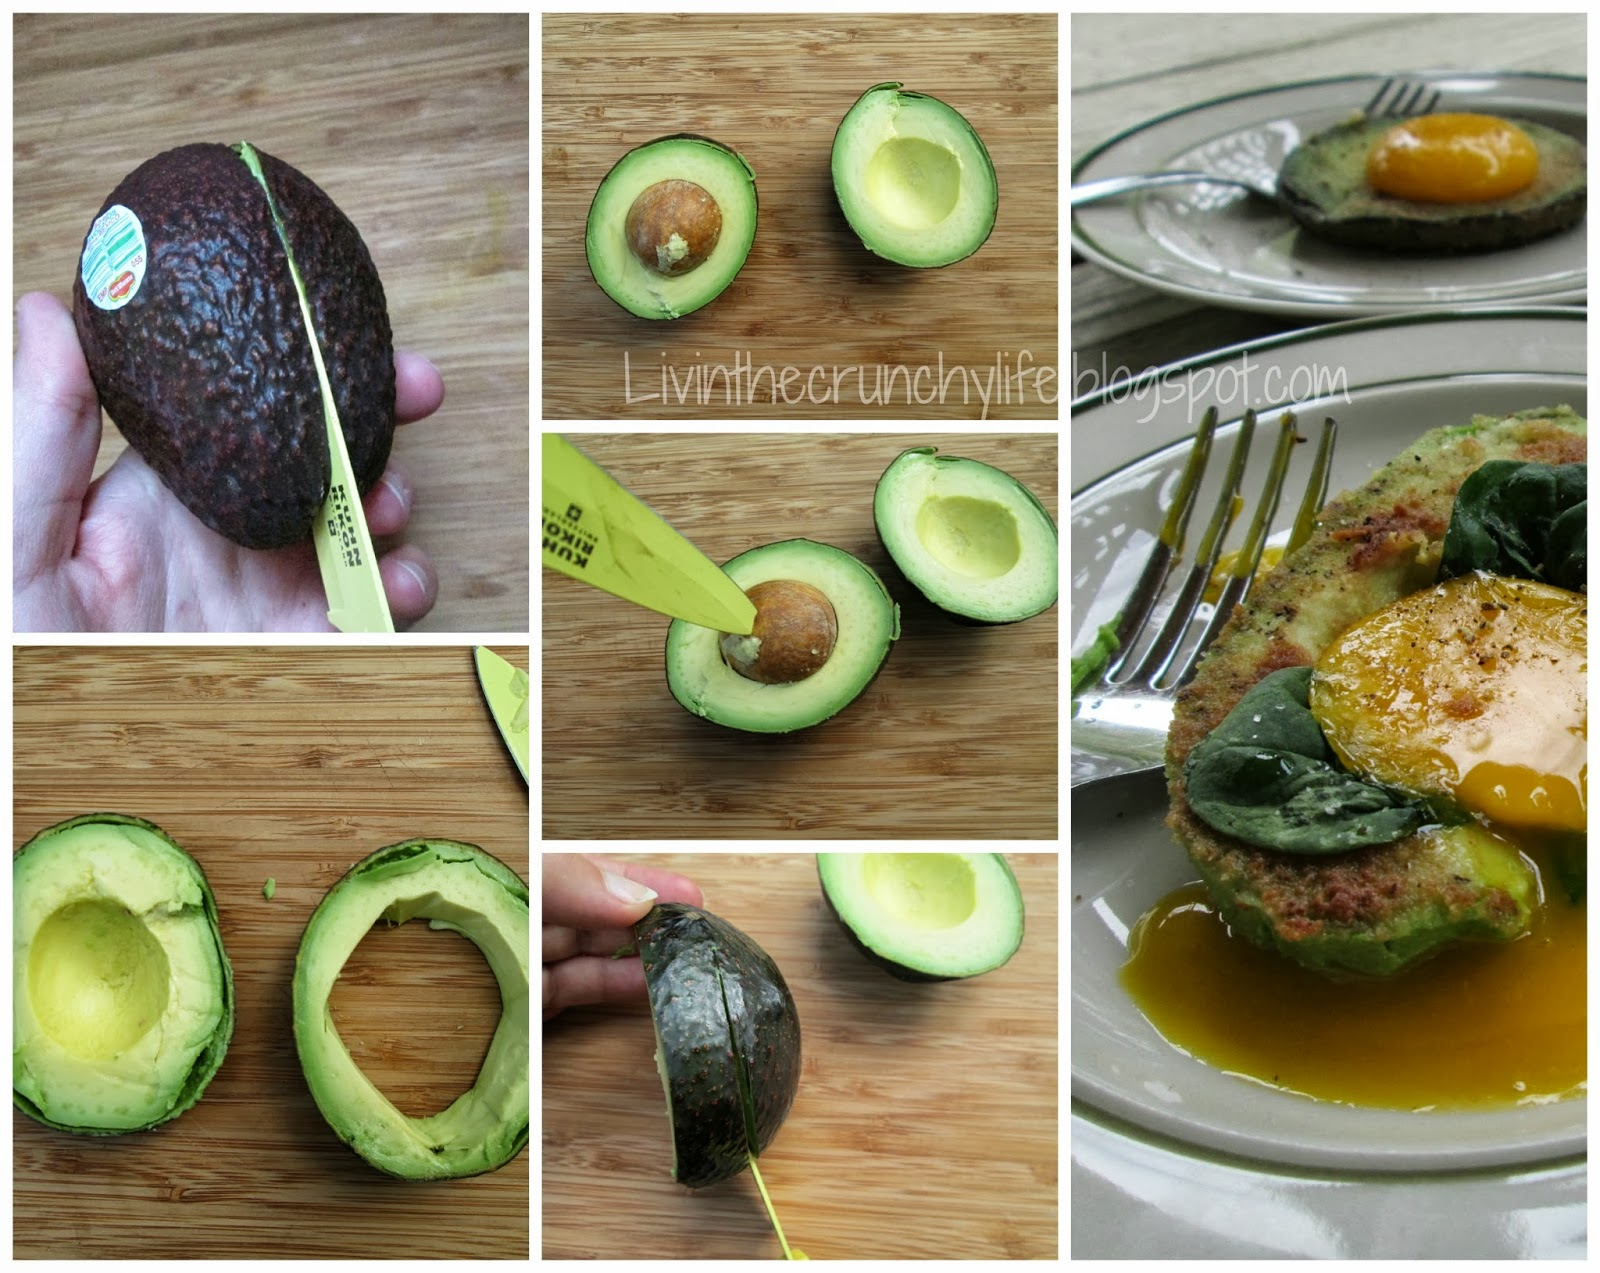 Fried Egg in an Avocado (Whole Egg or Egg Yolk Only)